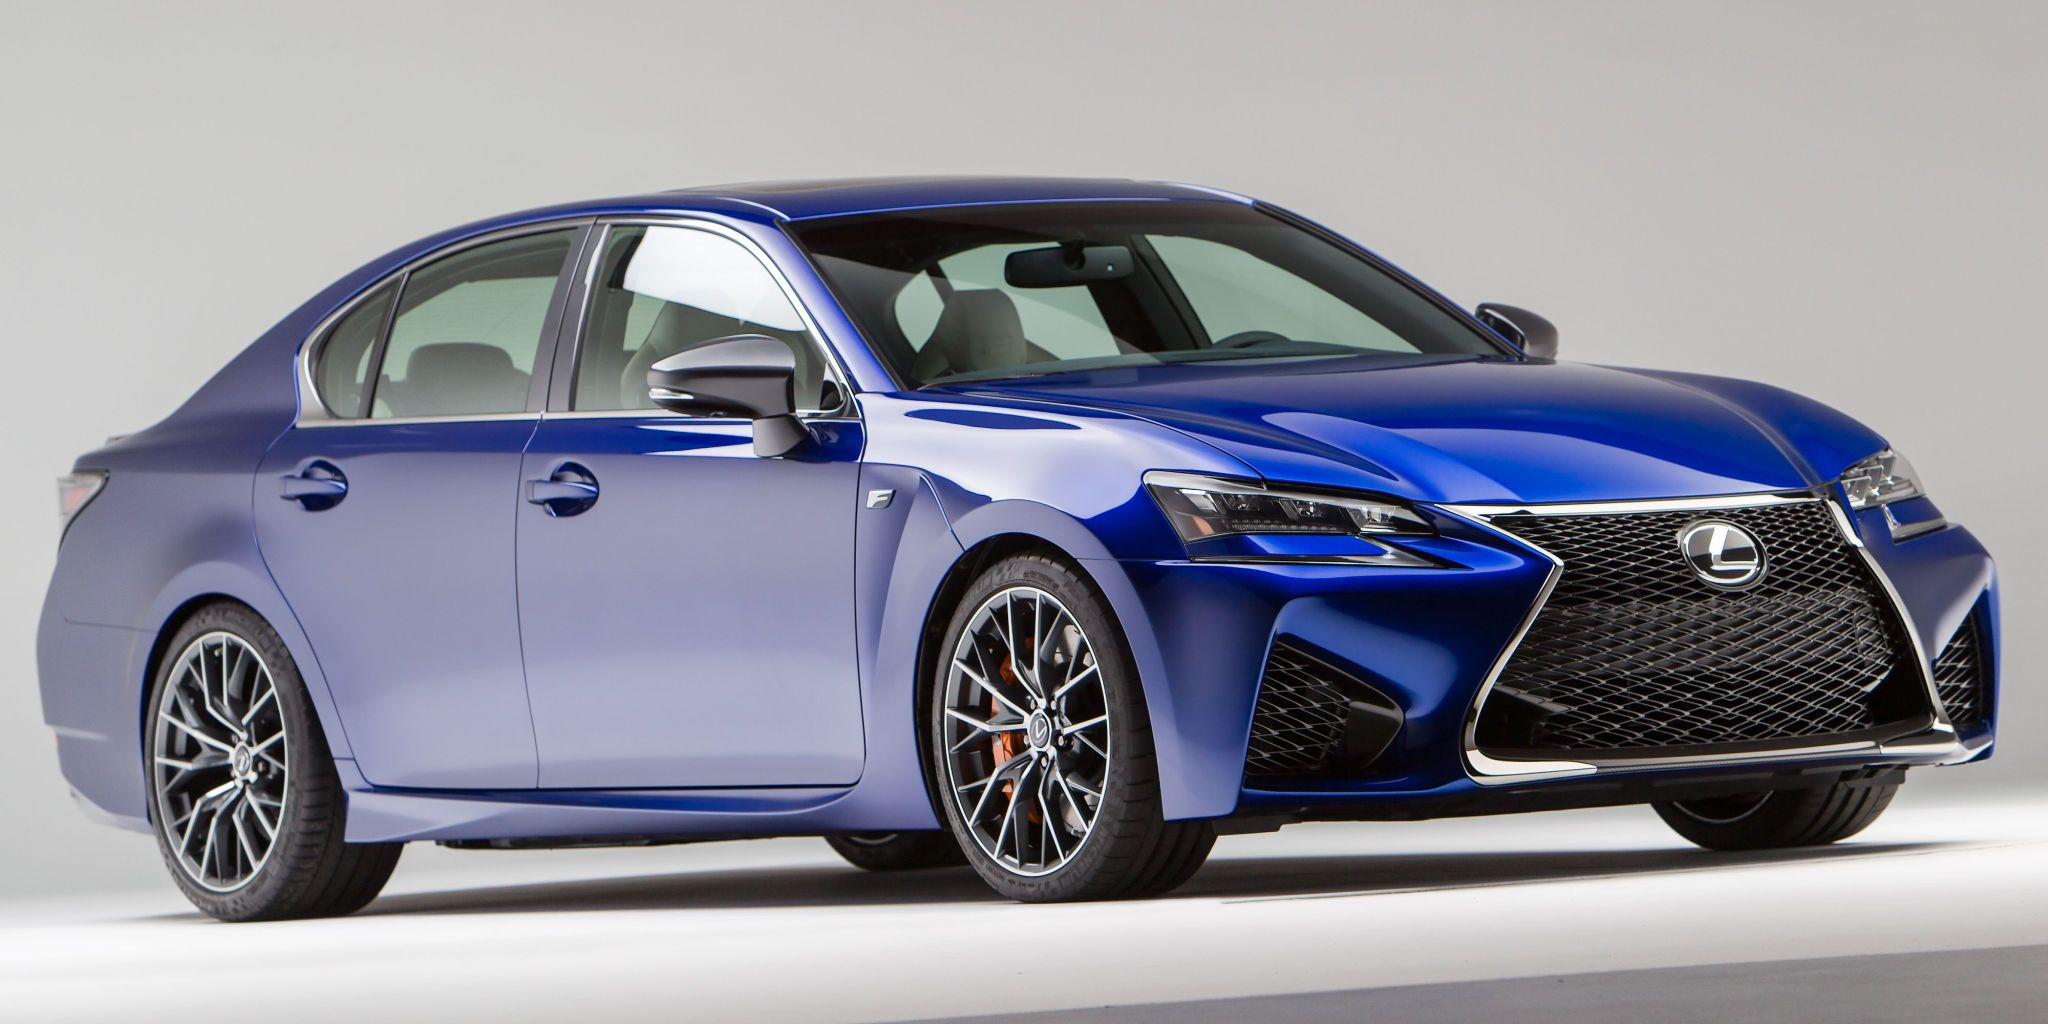 2016 Lexus GS F gets 467hp V8, will debut in Detroit